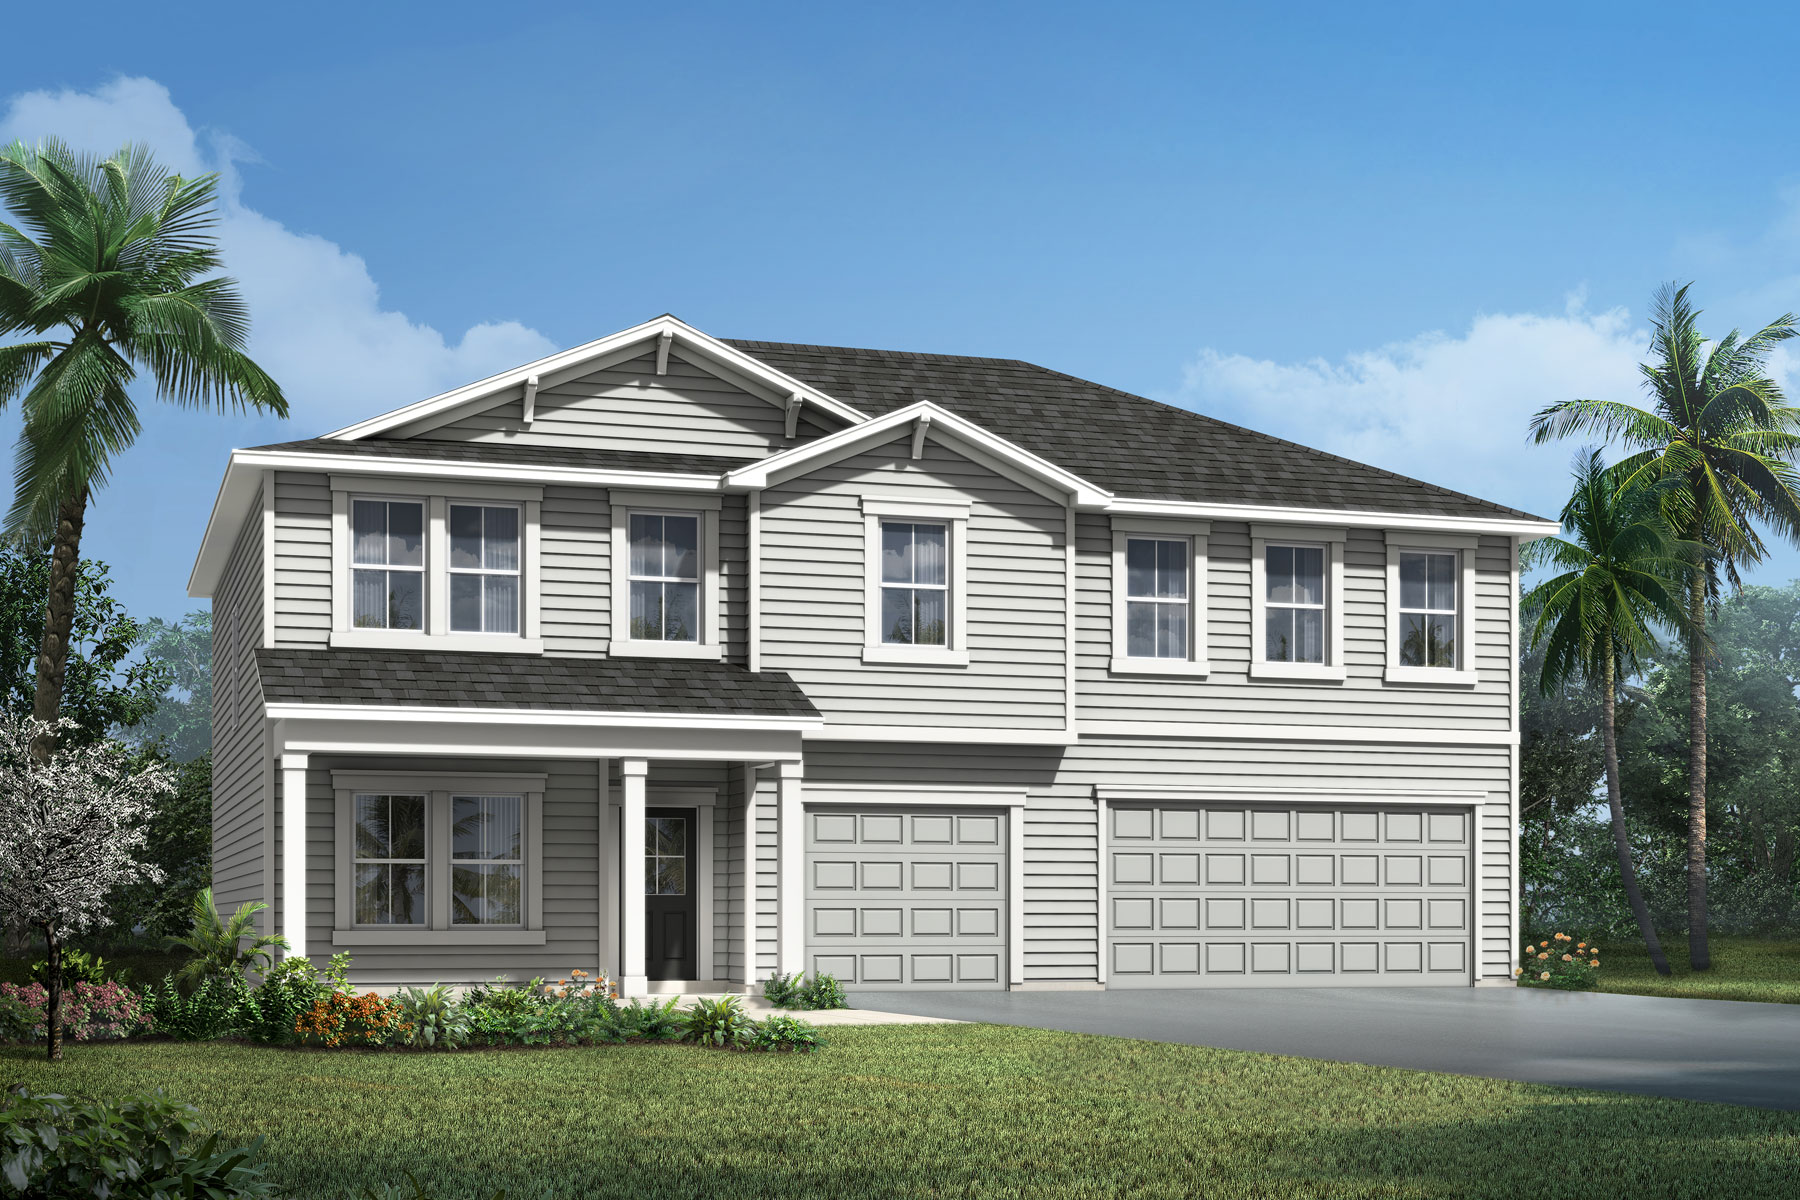 Chatam Plan Elevation Front at RiverTown - Haven in St. Johns Florida by Mattamy Homes